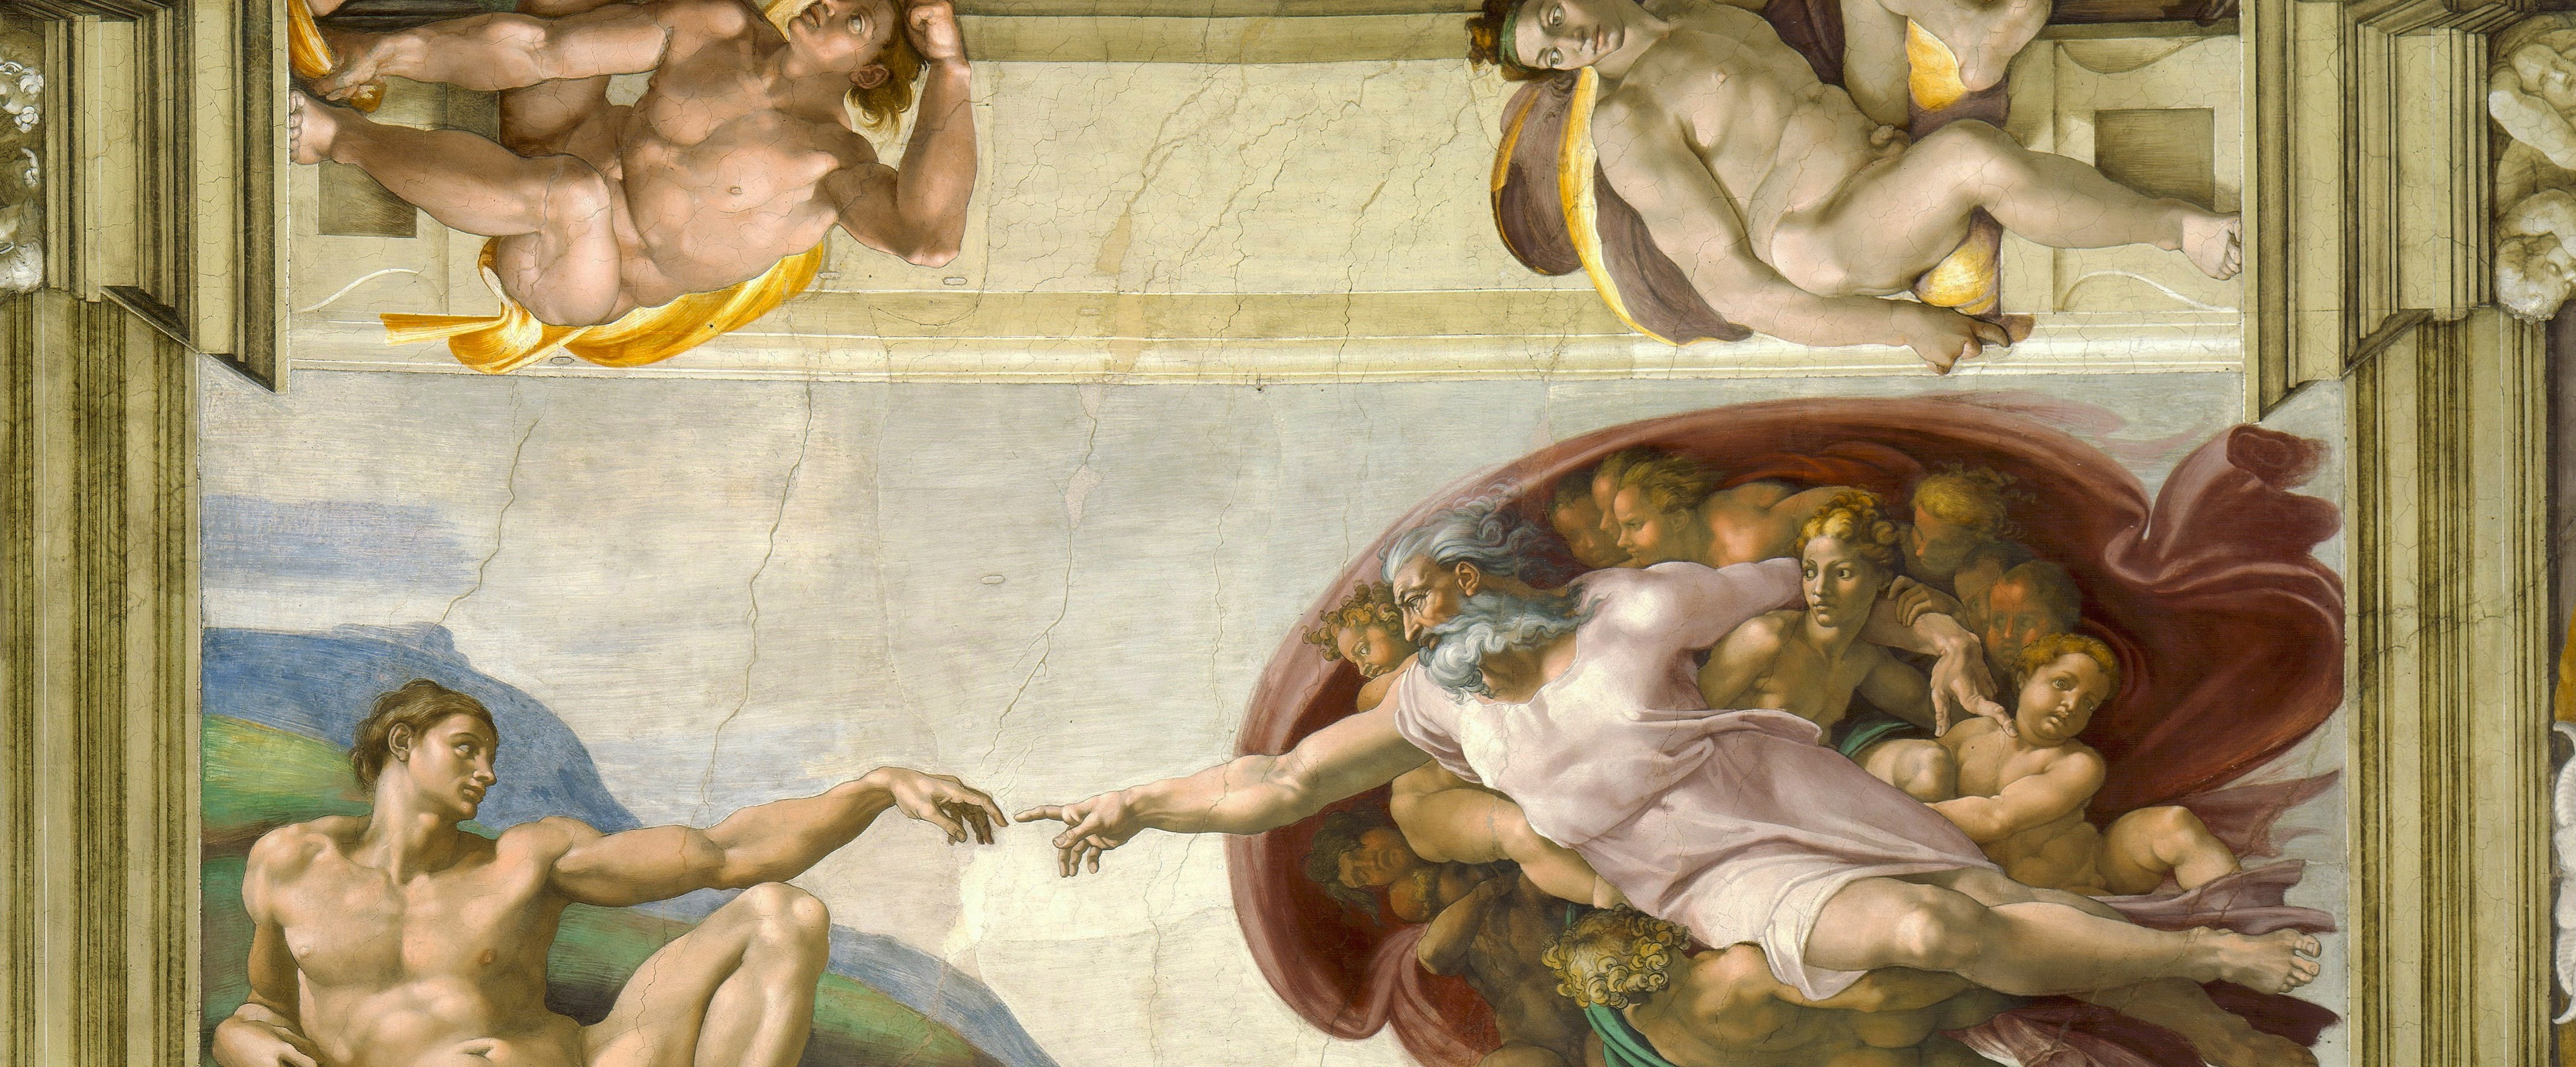 Michelangelo's The Creation of Adam on the ceiling of the Sistine Chapel in Rome is one of the most famous artworks of the Renaissance. (Image via Wikipedia)